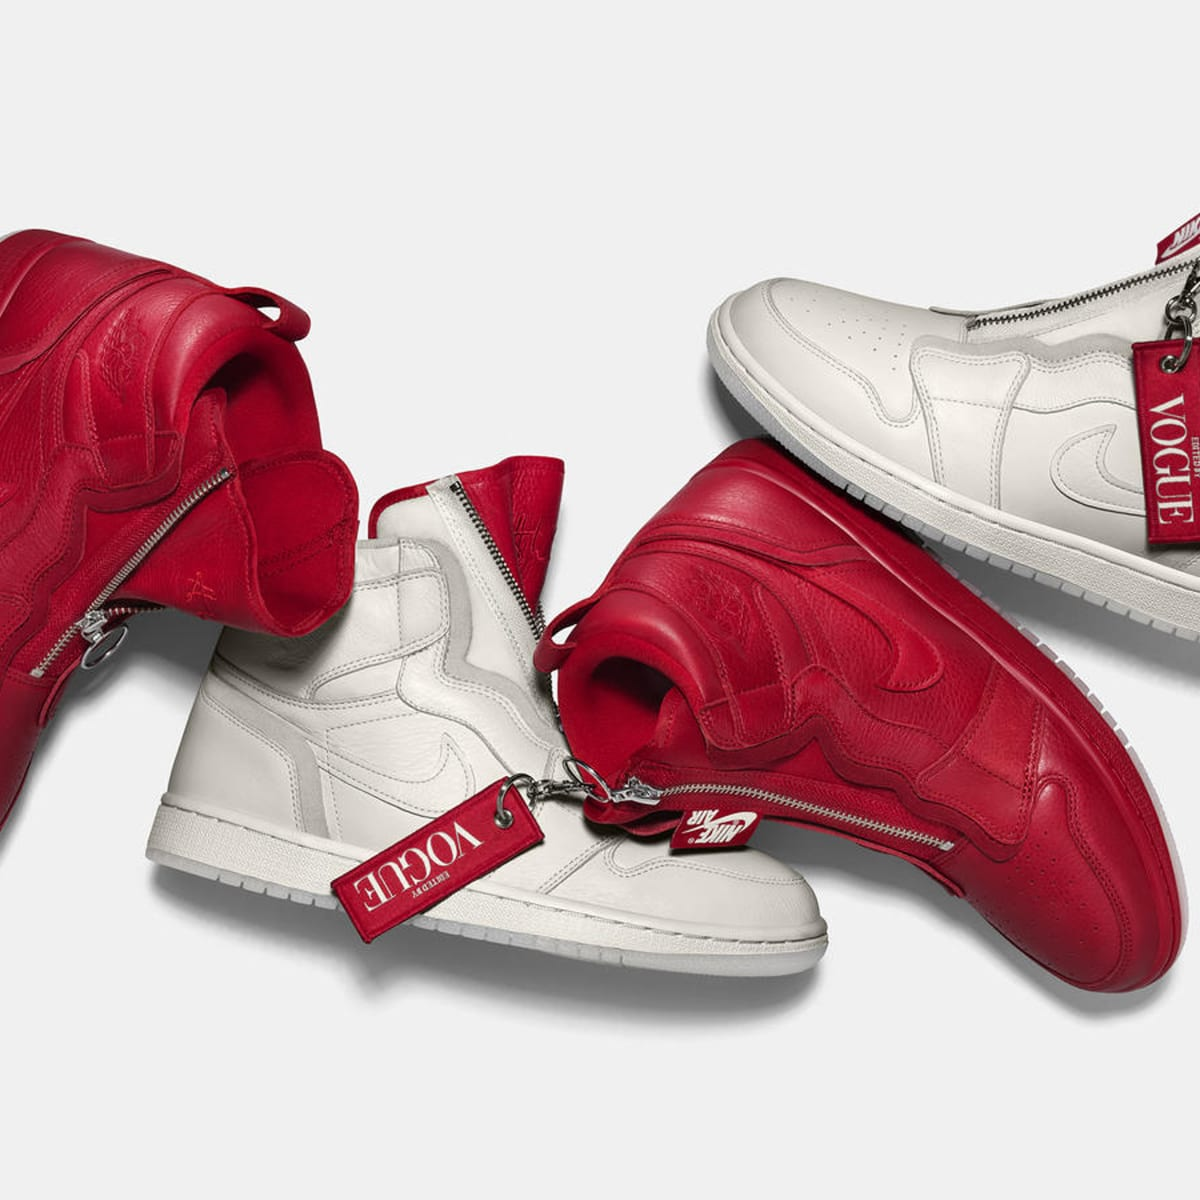 entrada Rusia Gallina  Vogue' and Nike Collaborated on a Pair of Anna Wintour-Inspired Air Jordans  - Fashionista